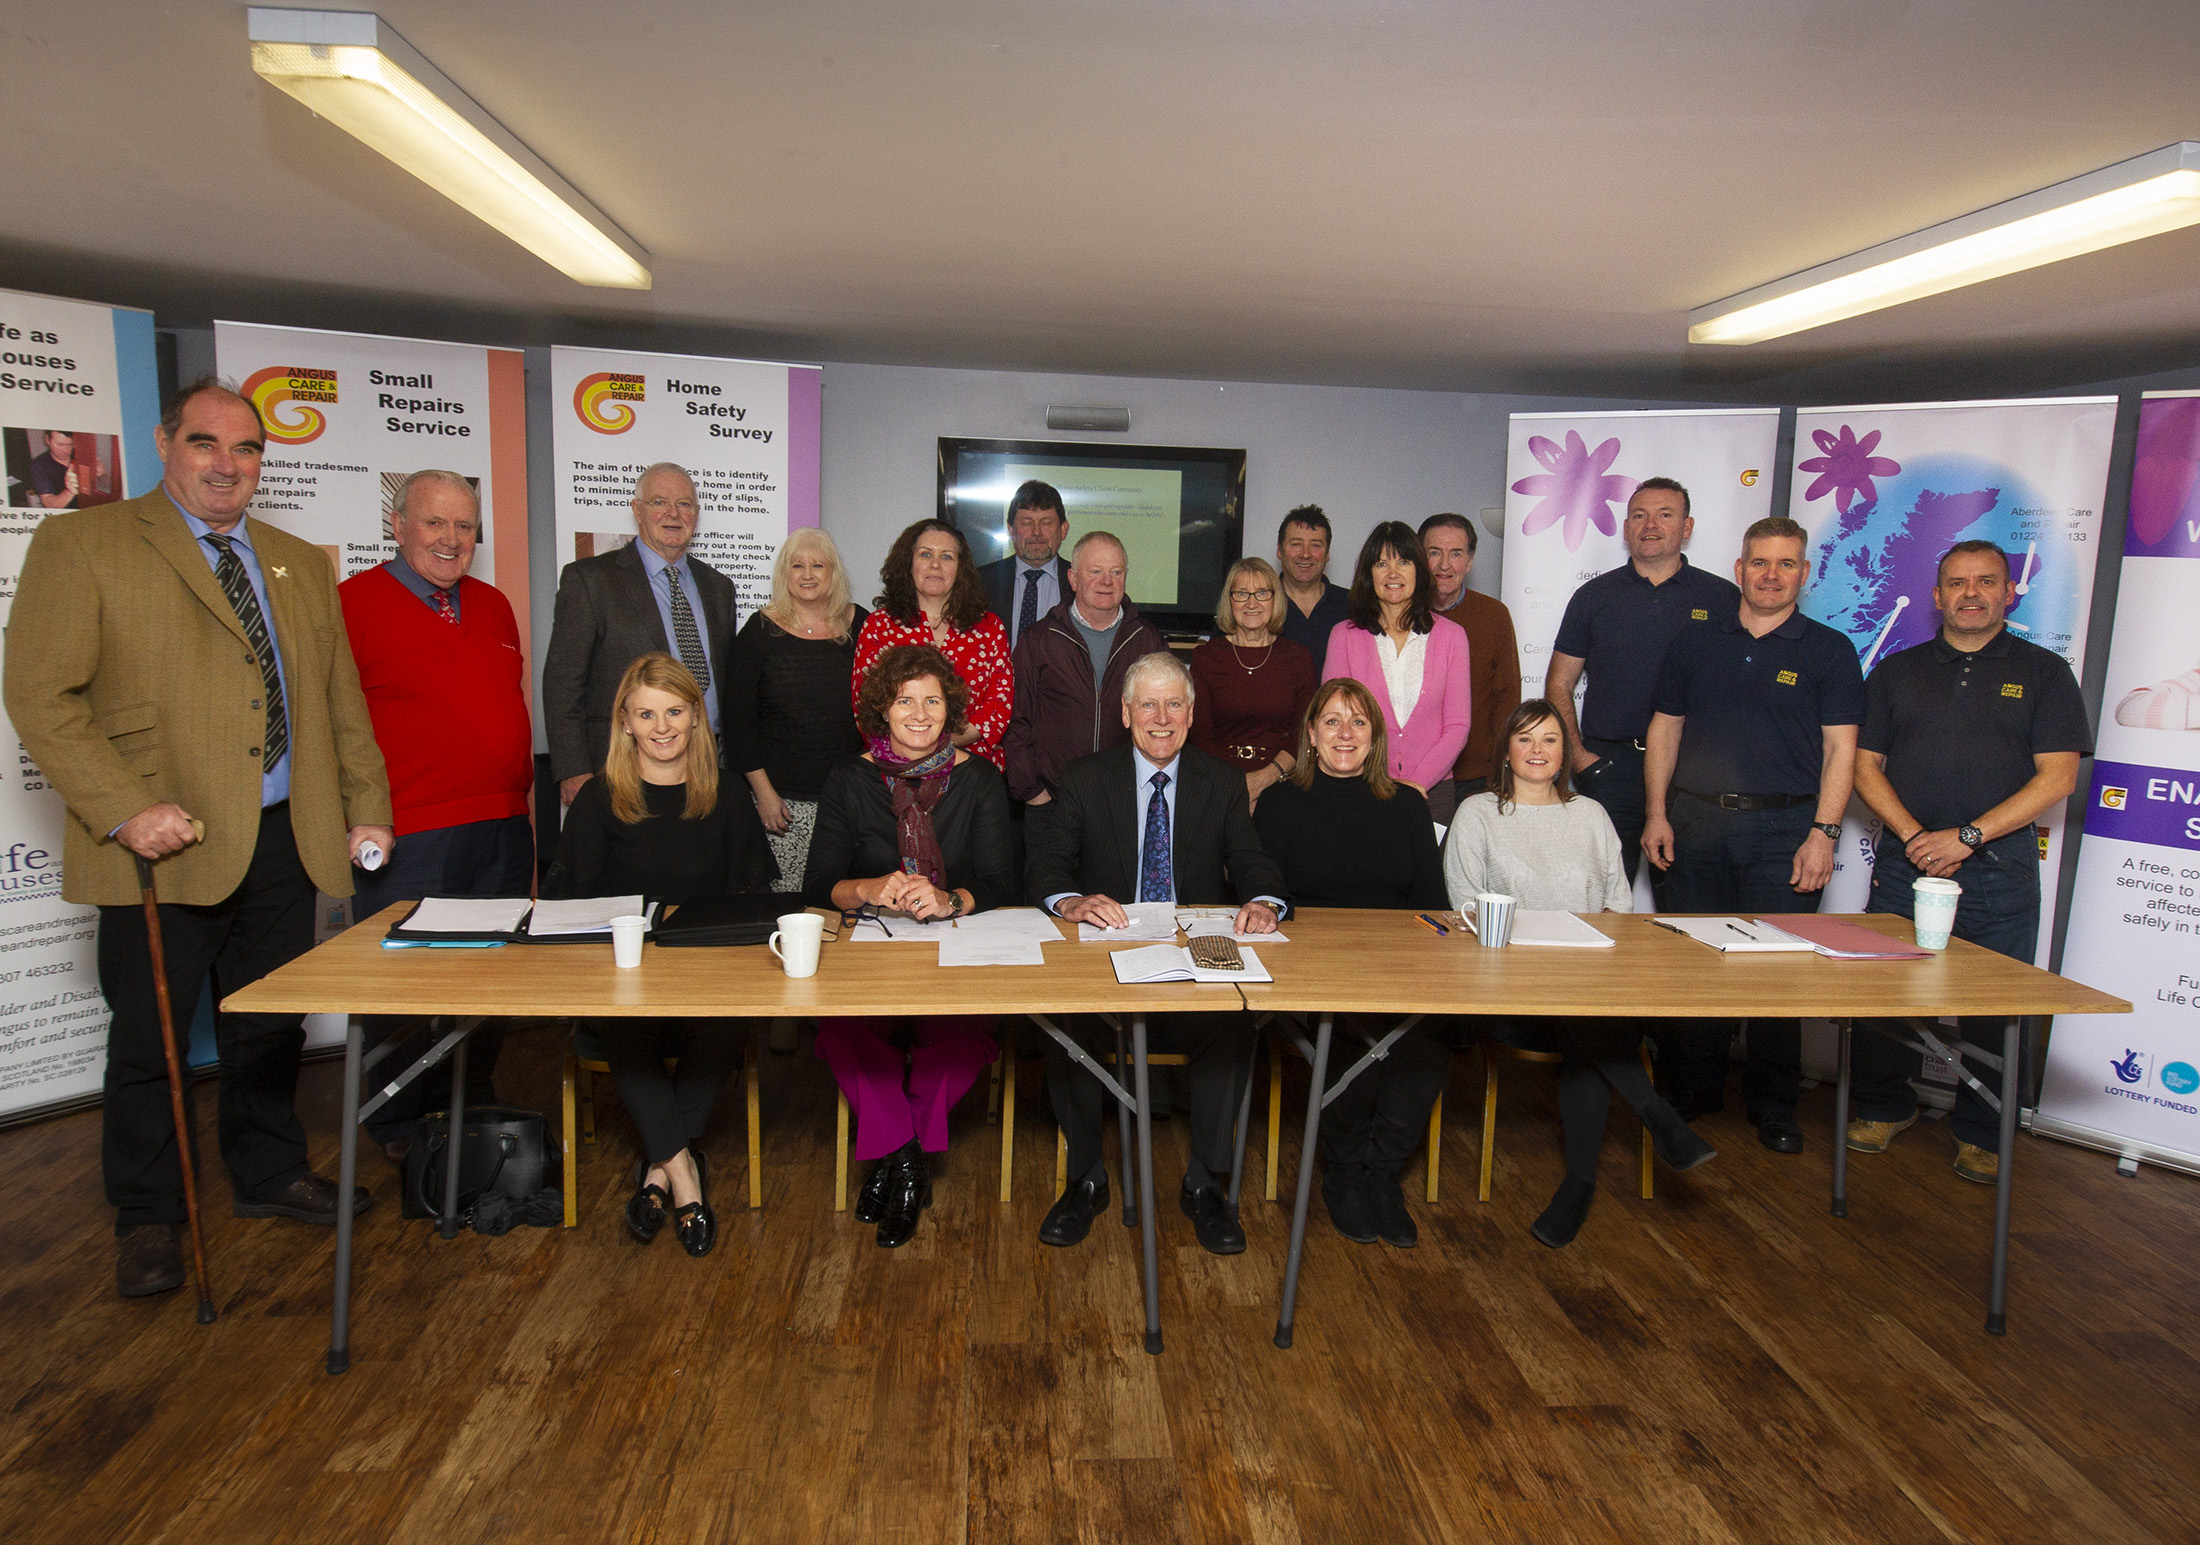 Angus Care and Repair board at their November 2018 meeting in Forfar.